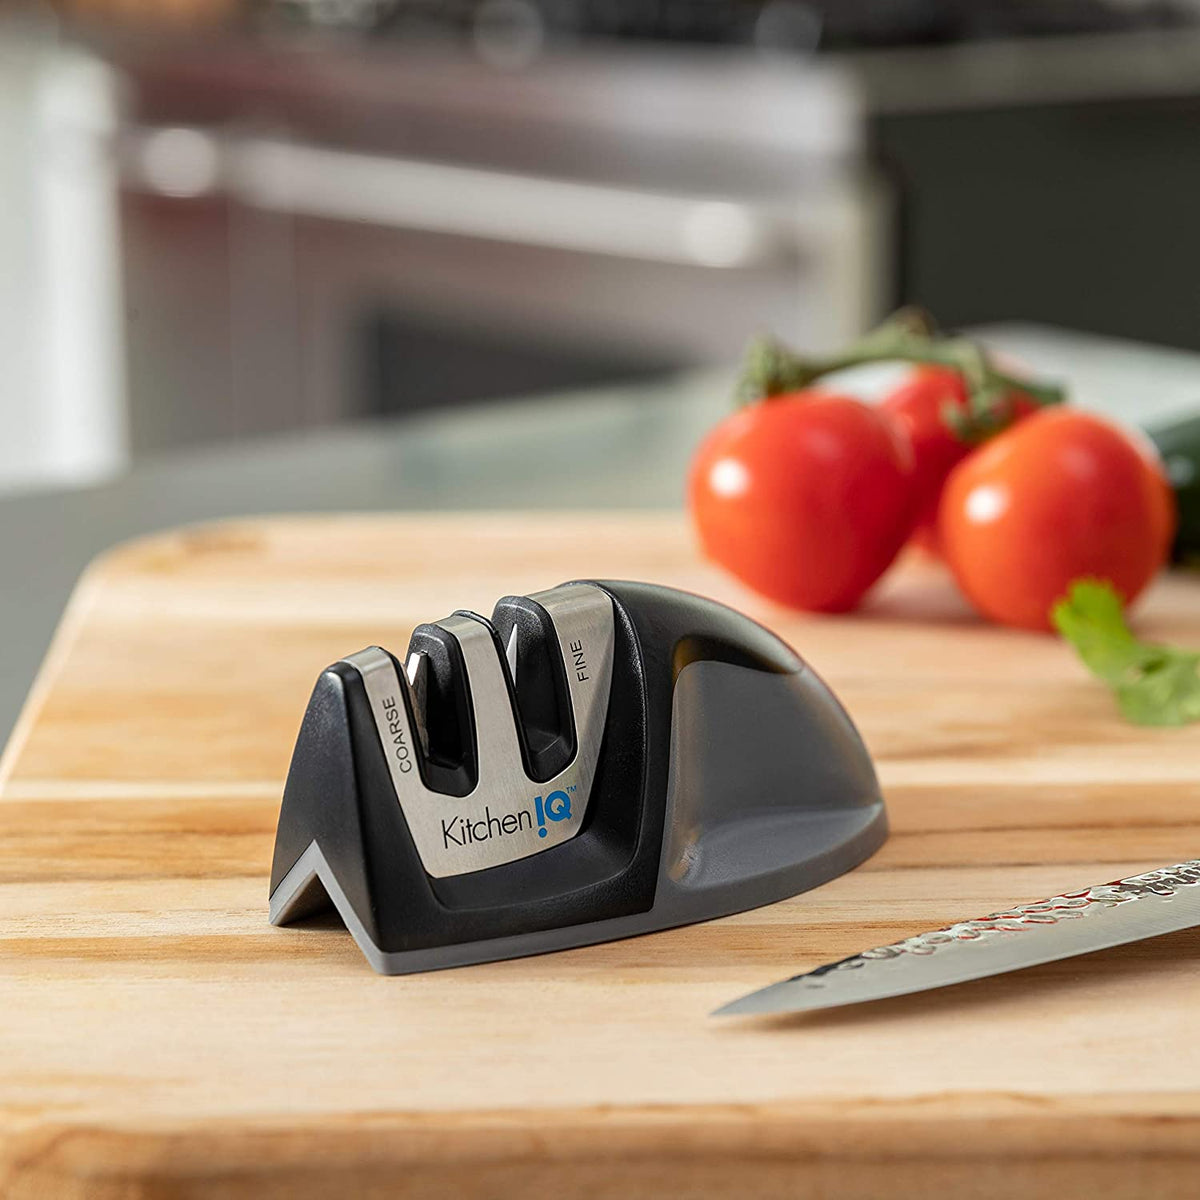 Smith's Kitchen IQ - Edge Grip 2-stage Knife Sharpener